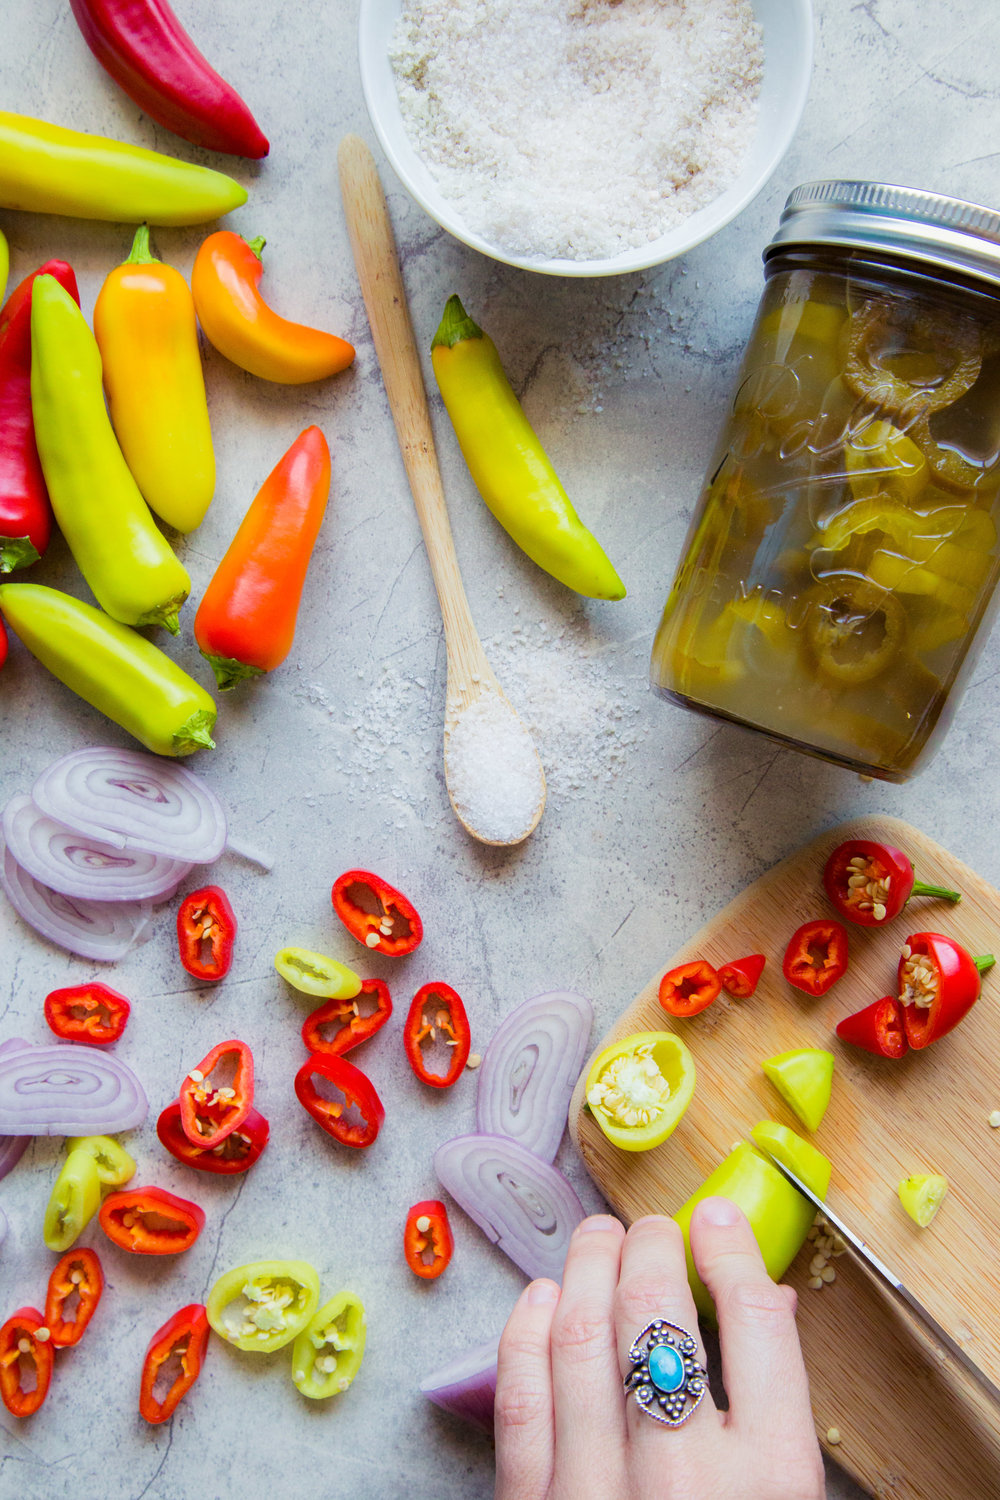 How Much Salt Should You Use to Ferment Vegetables | How to Ferment Vegetables